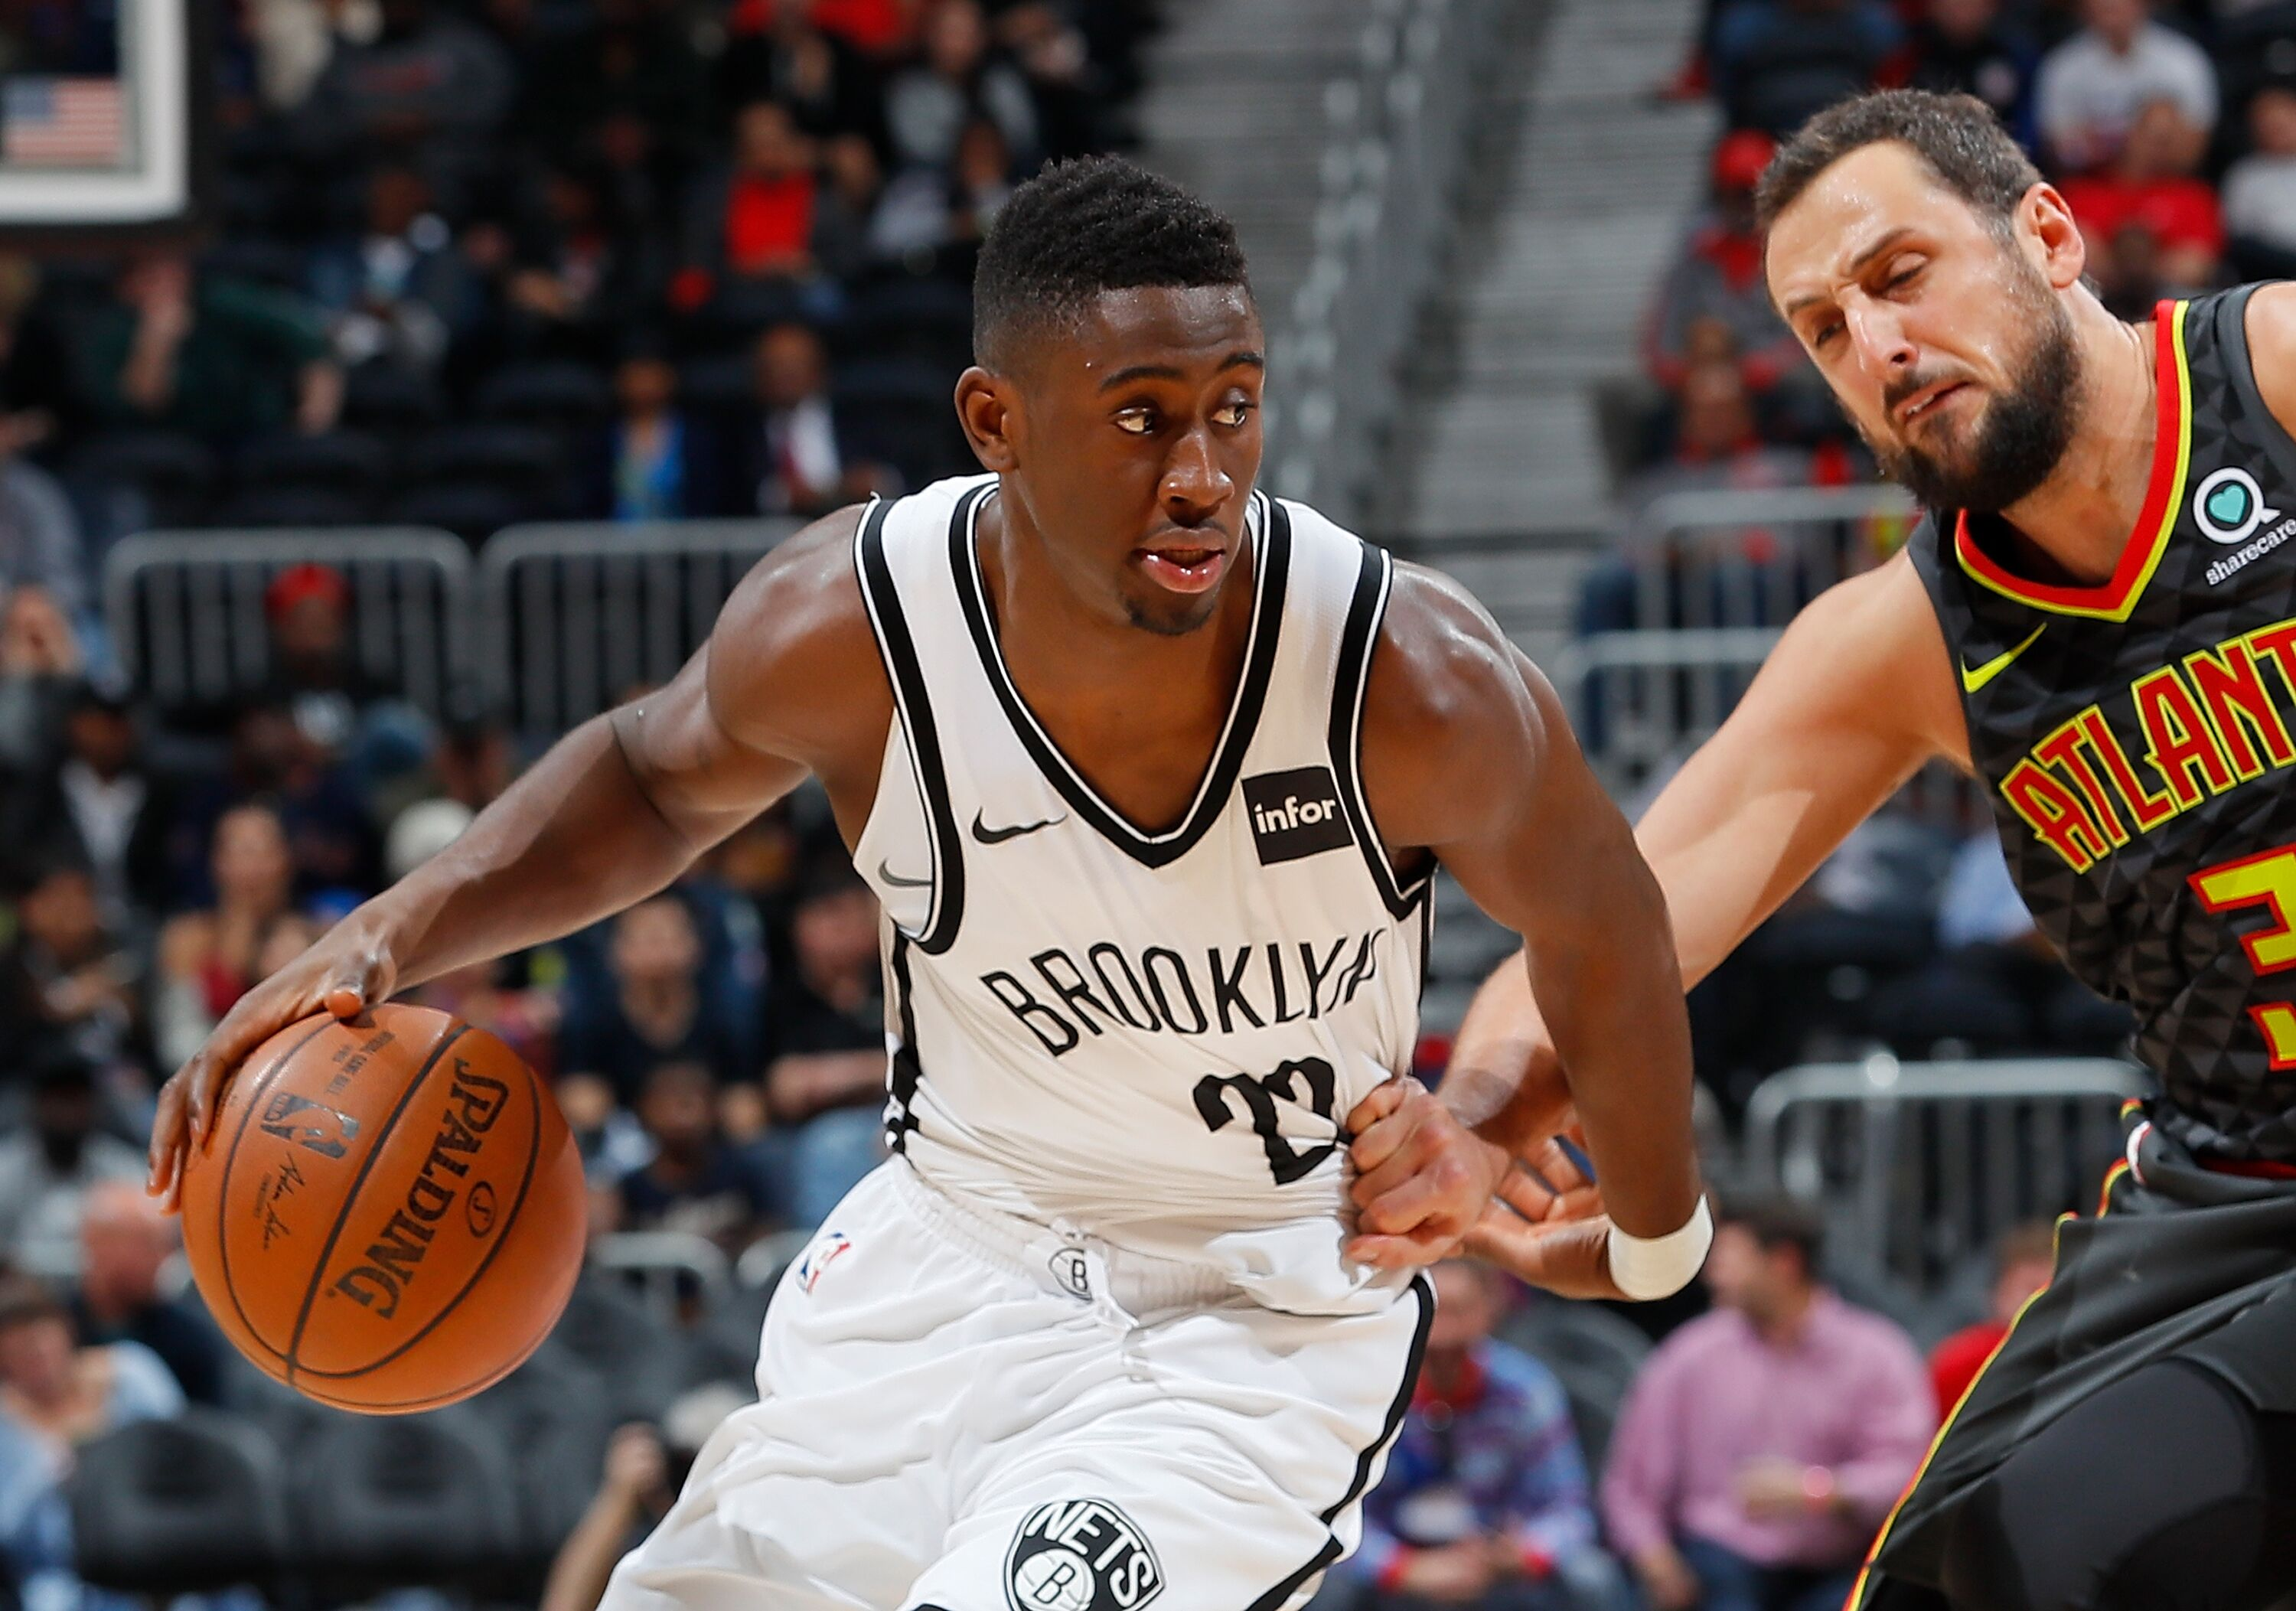 ATLANTA, GA - DECEMBER 04: Caris LeVert #22 of the Brooklyn Nets drives against Marco Belinelli #3 of the Atlanta Hawks at Philips Arena on December 4, 2017 in Atlanta, Georgia. NOTE TO USER: User expressly acknowledges and agrees that, by downloading and or using this photograph, User is consenting to the terms and conditions of the Getty Images License Agreement. (Photo by Kevin C. Cox/Getty Images)